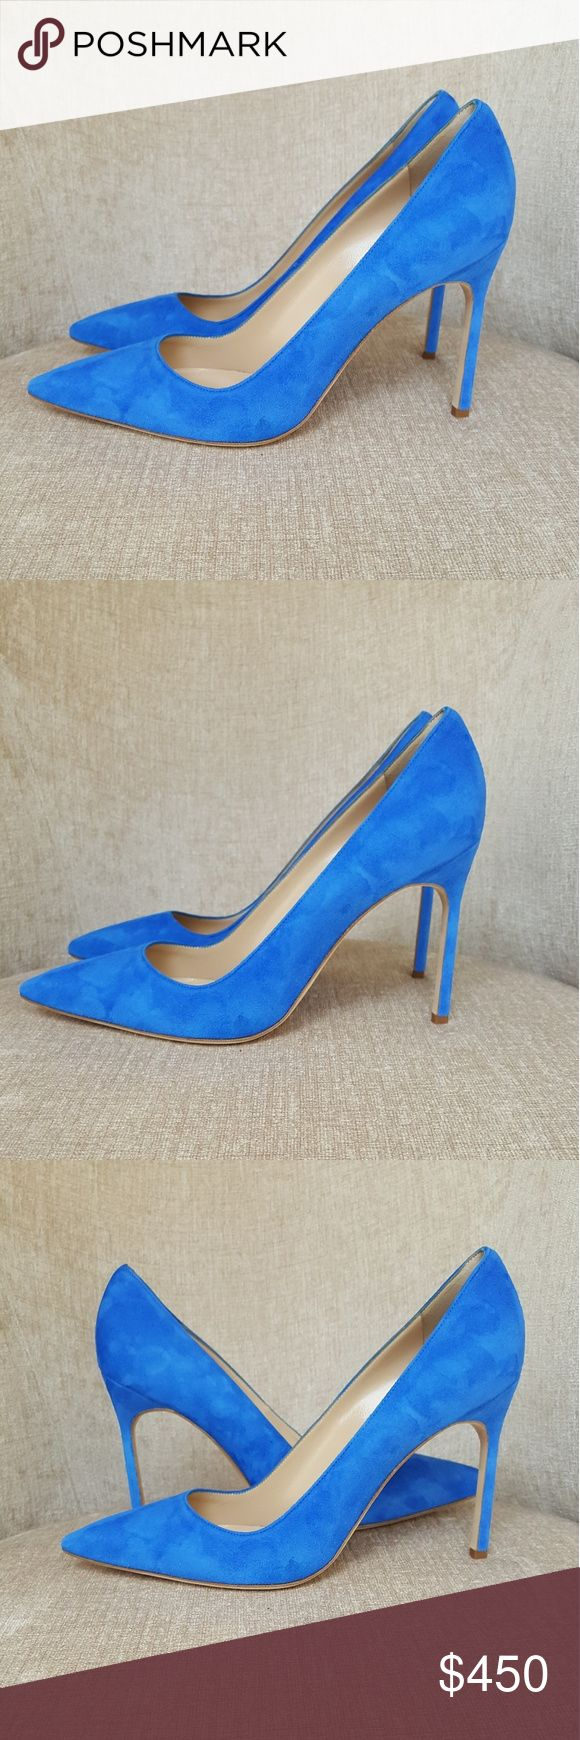 NIB Manolo Blahnik Blue Suede BB Pumps US 8.5 / Euro 38.5.  New with defects.  Super faint scuffs on soles.  Super faint marks on suede.  See pictures.  Heels 4 inches. Manolo Blahnik Shoes Heels